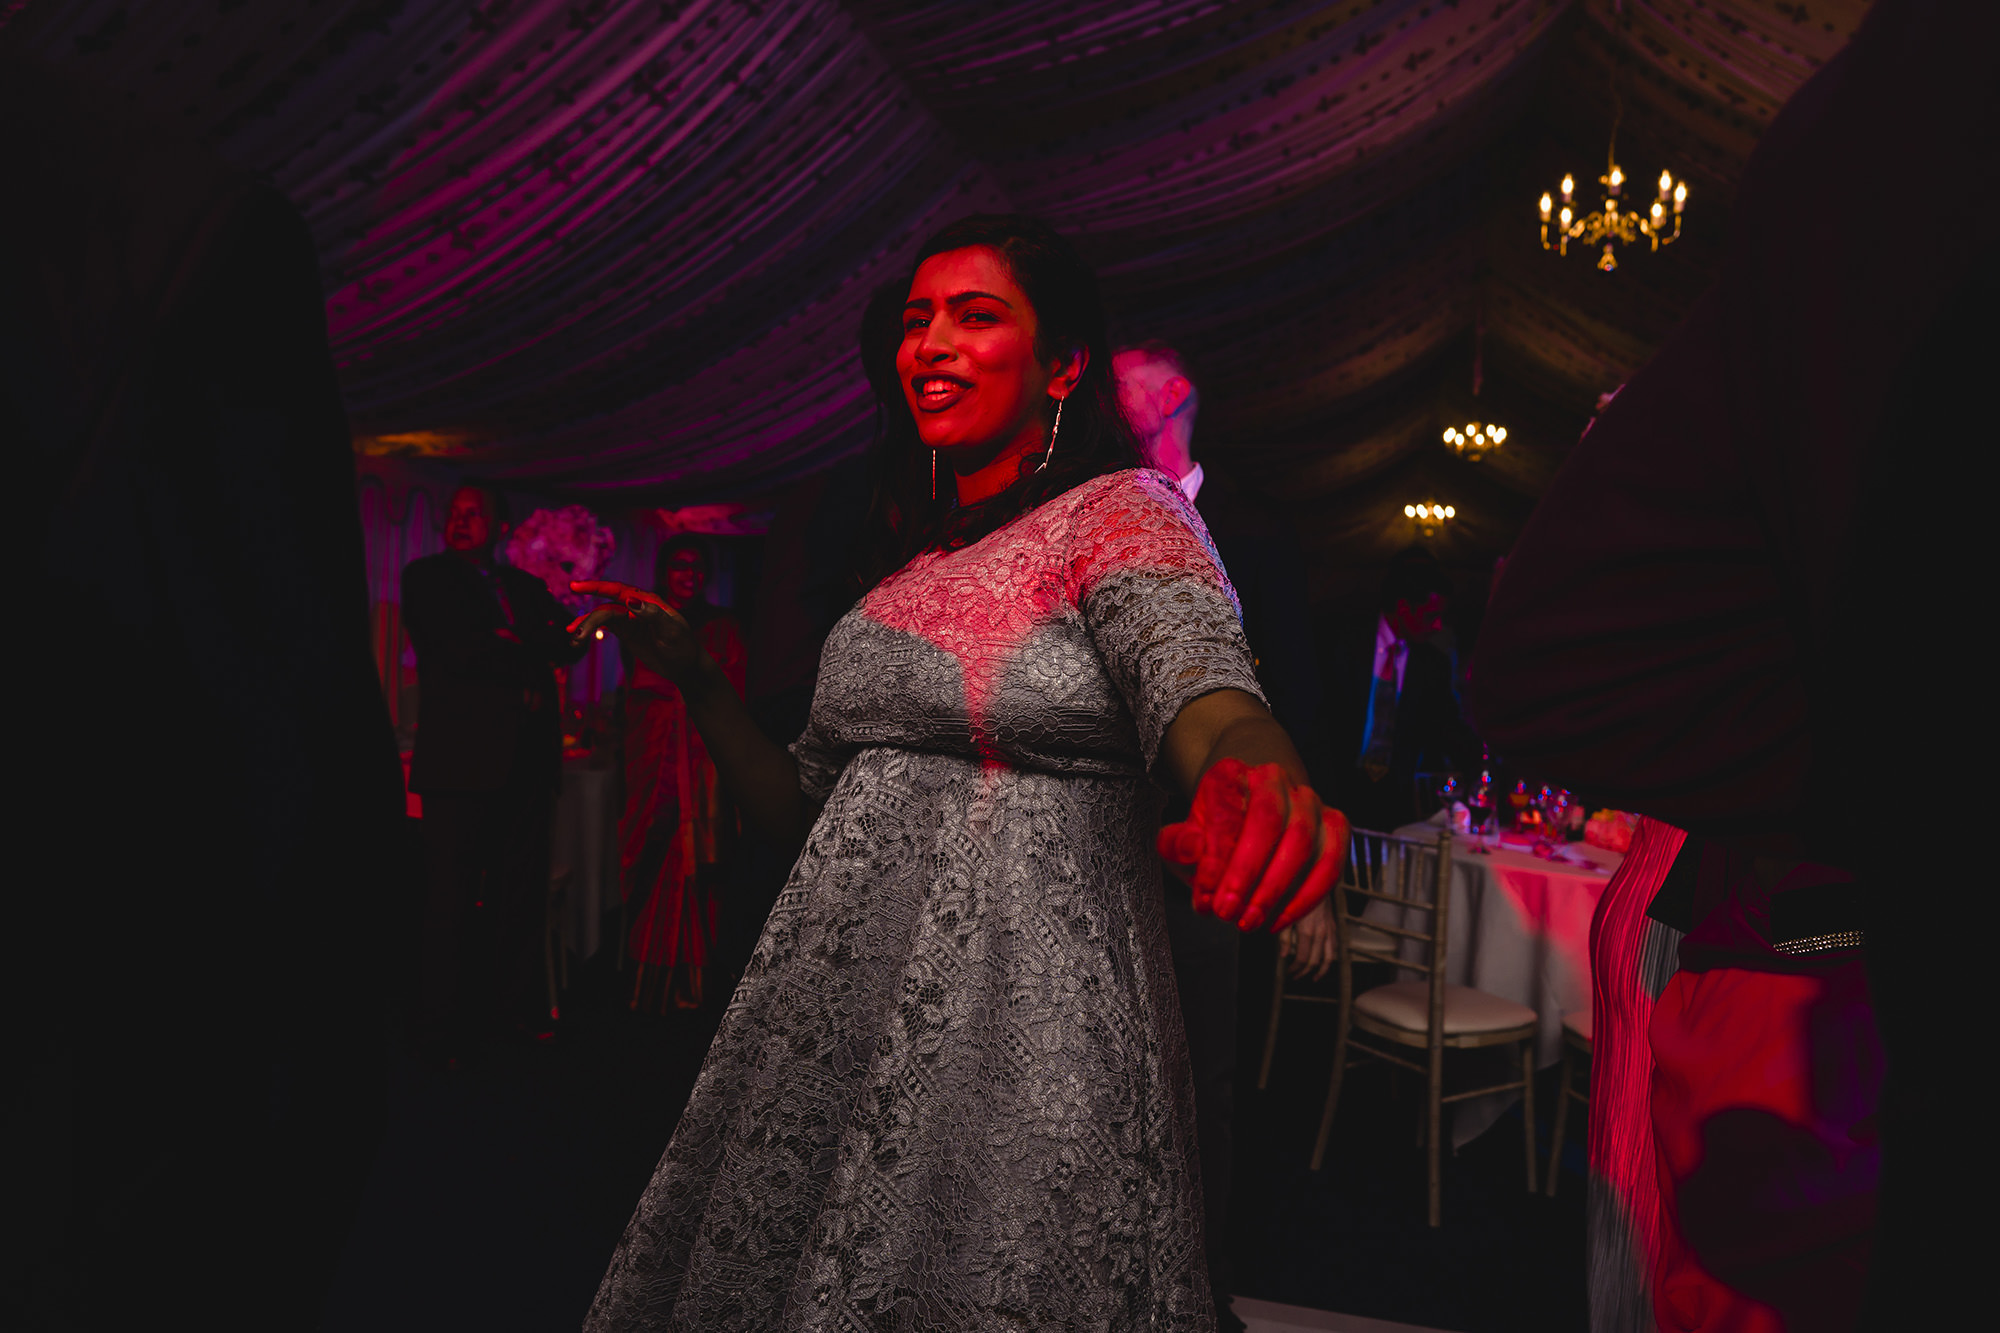 creative lighting of a friend at a wedding reception